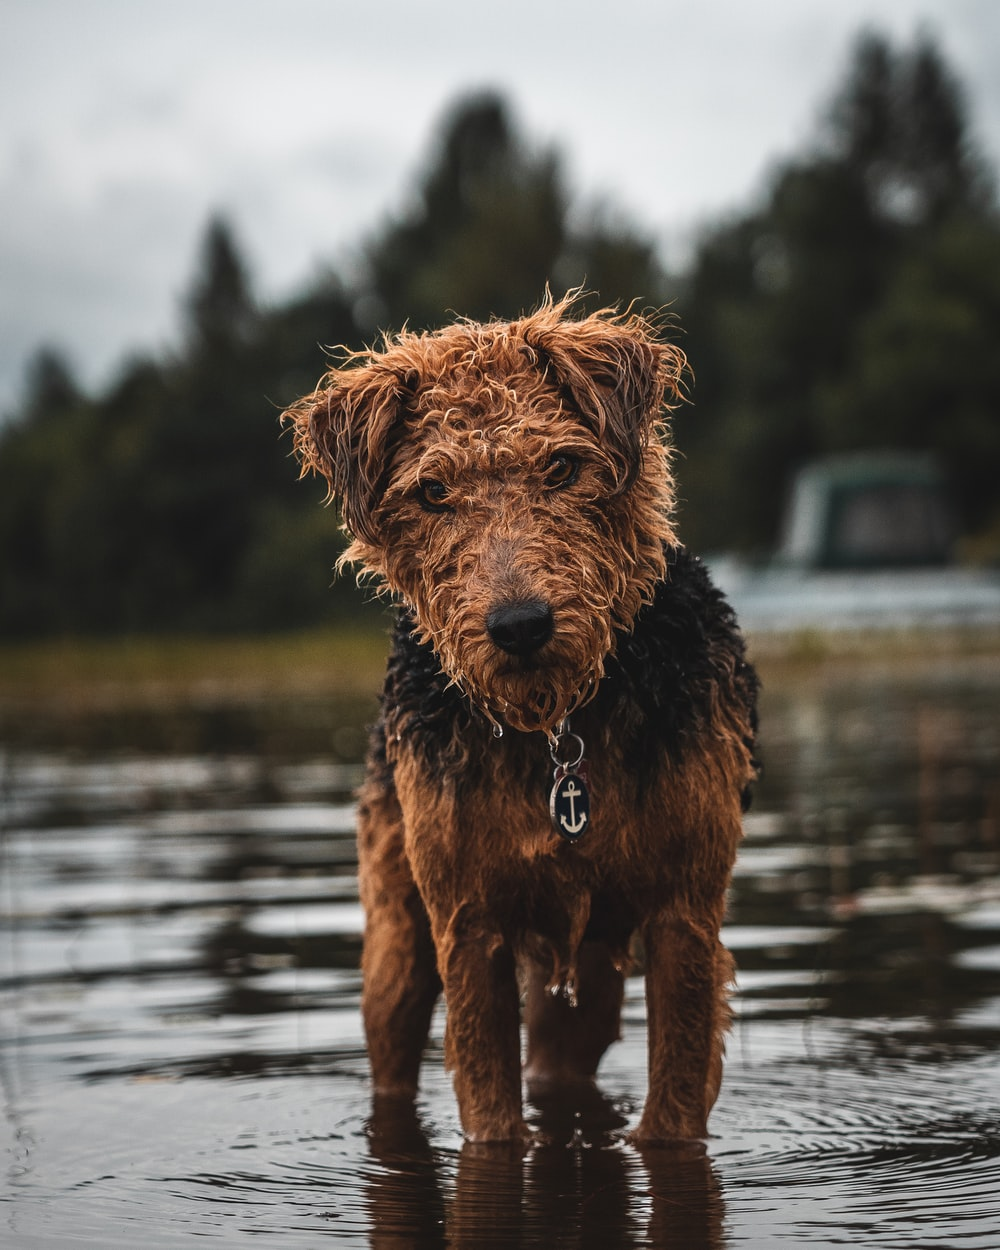 long-coated brown and black dog walking on body of water